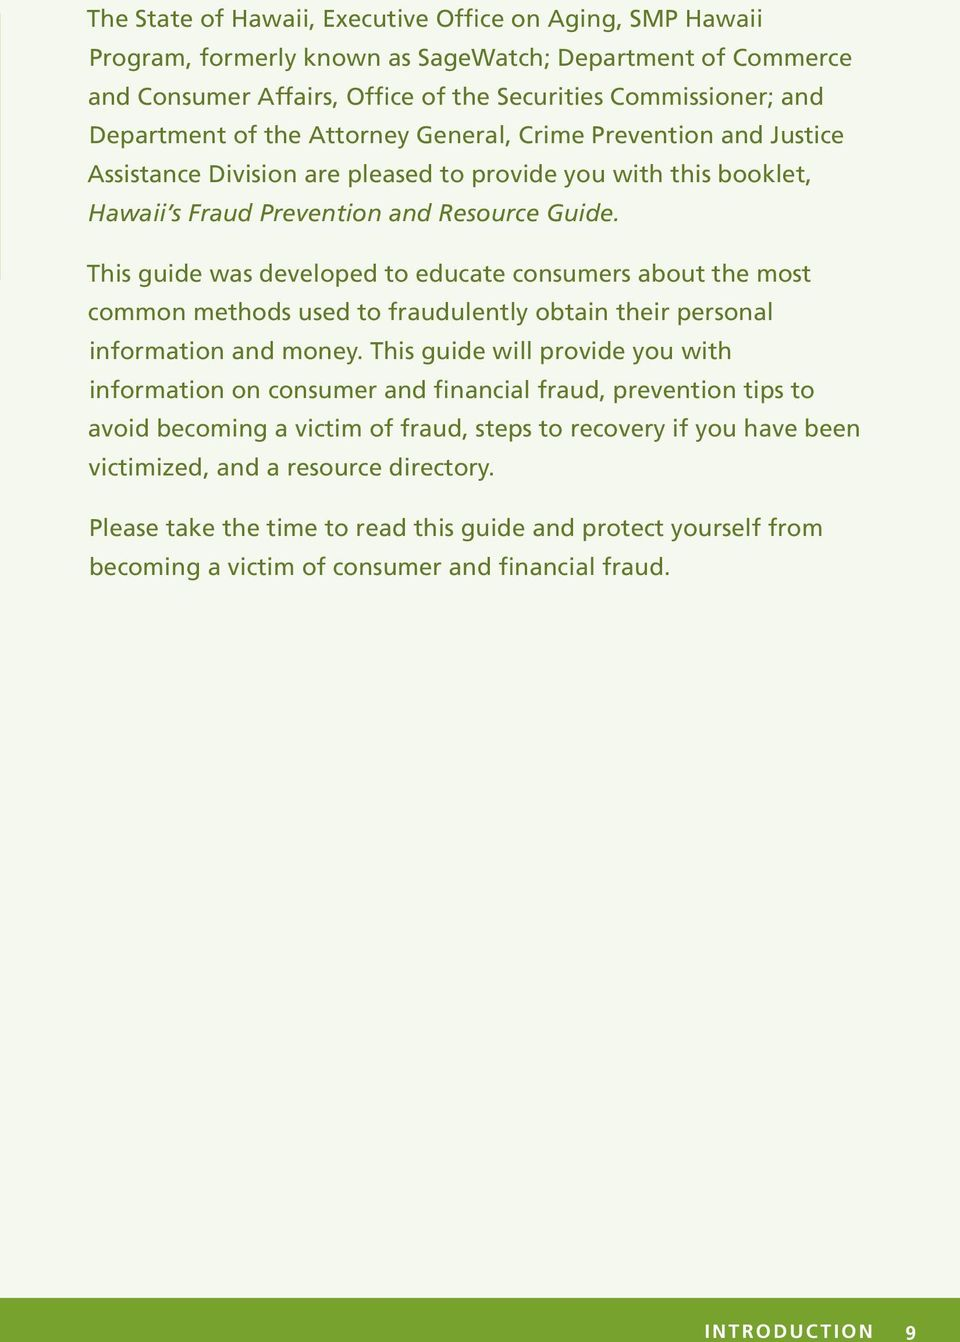 This guide was developed to educate consumers about the most common methods used to fraudulently obtain their personal information and money.